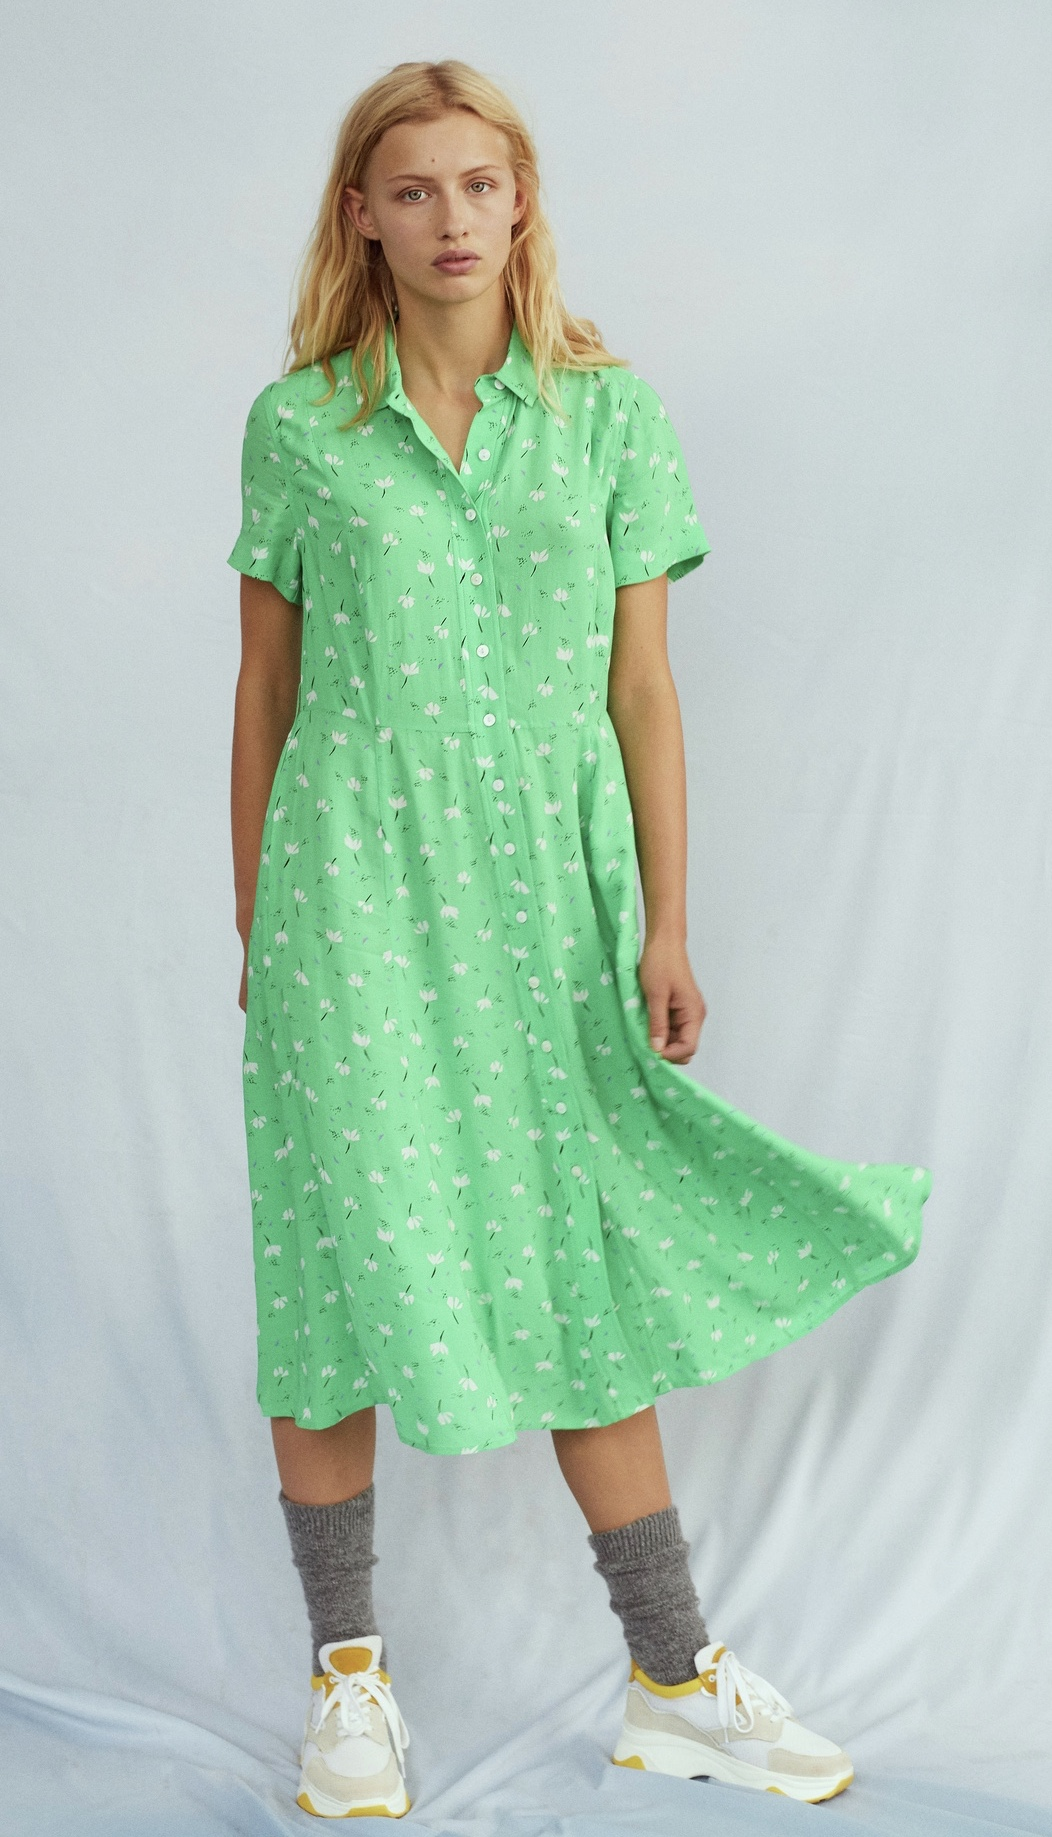 699f92d2 2NDDAY - Limelight Anemone Dress - Feel Good Store